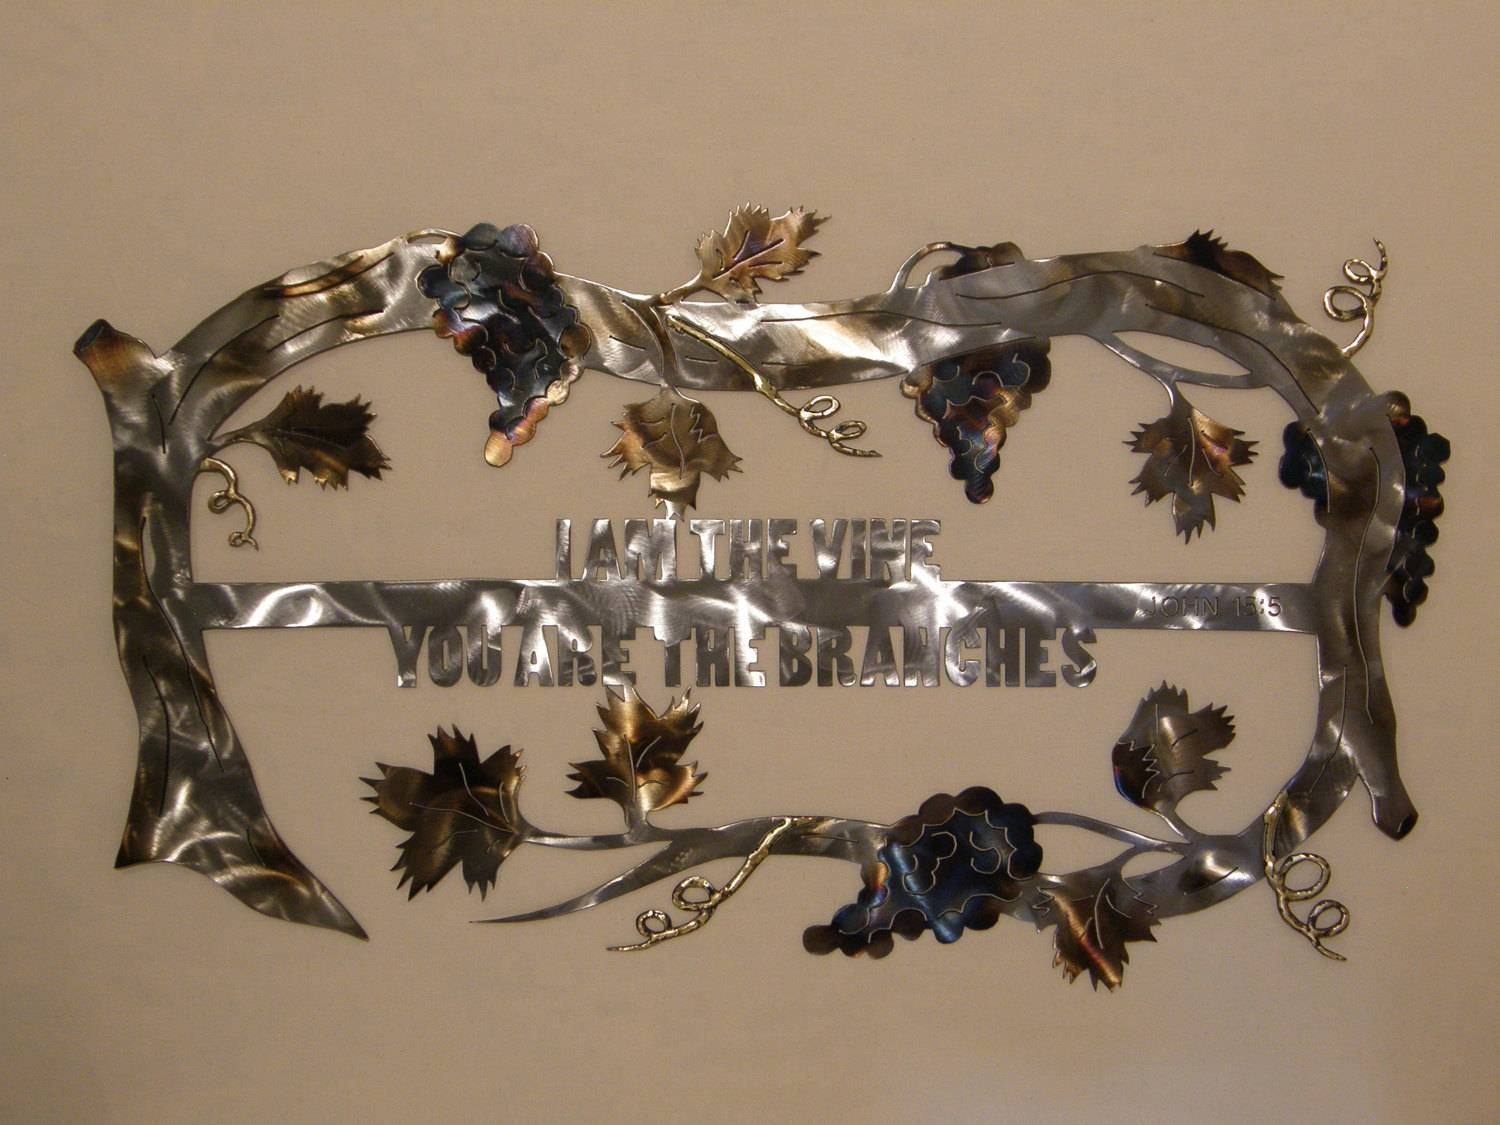 Christian Grape Vine Metal Wall Art Sculpture In Current Metal Wall Art Sculptures (View 5 of 20)